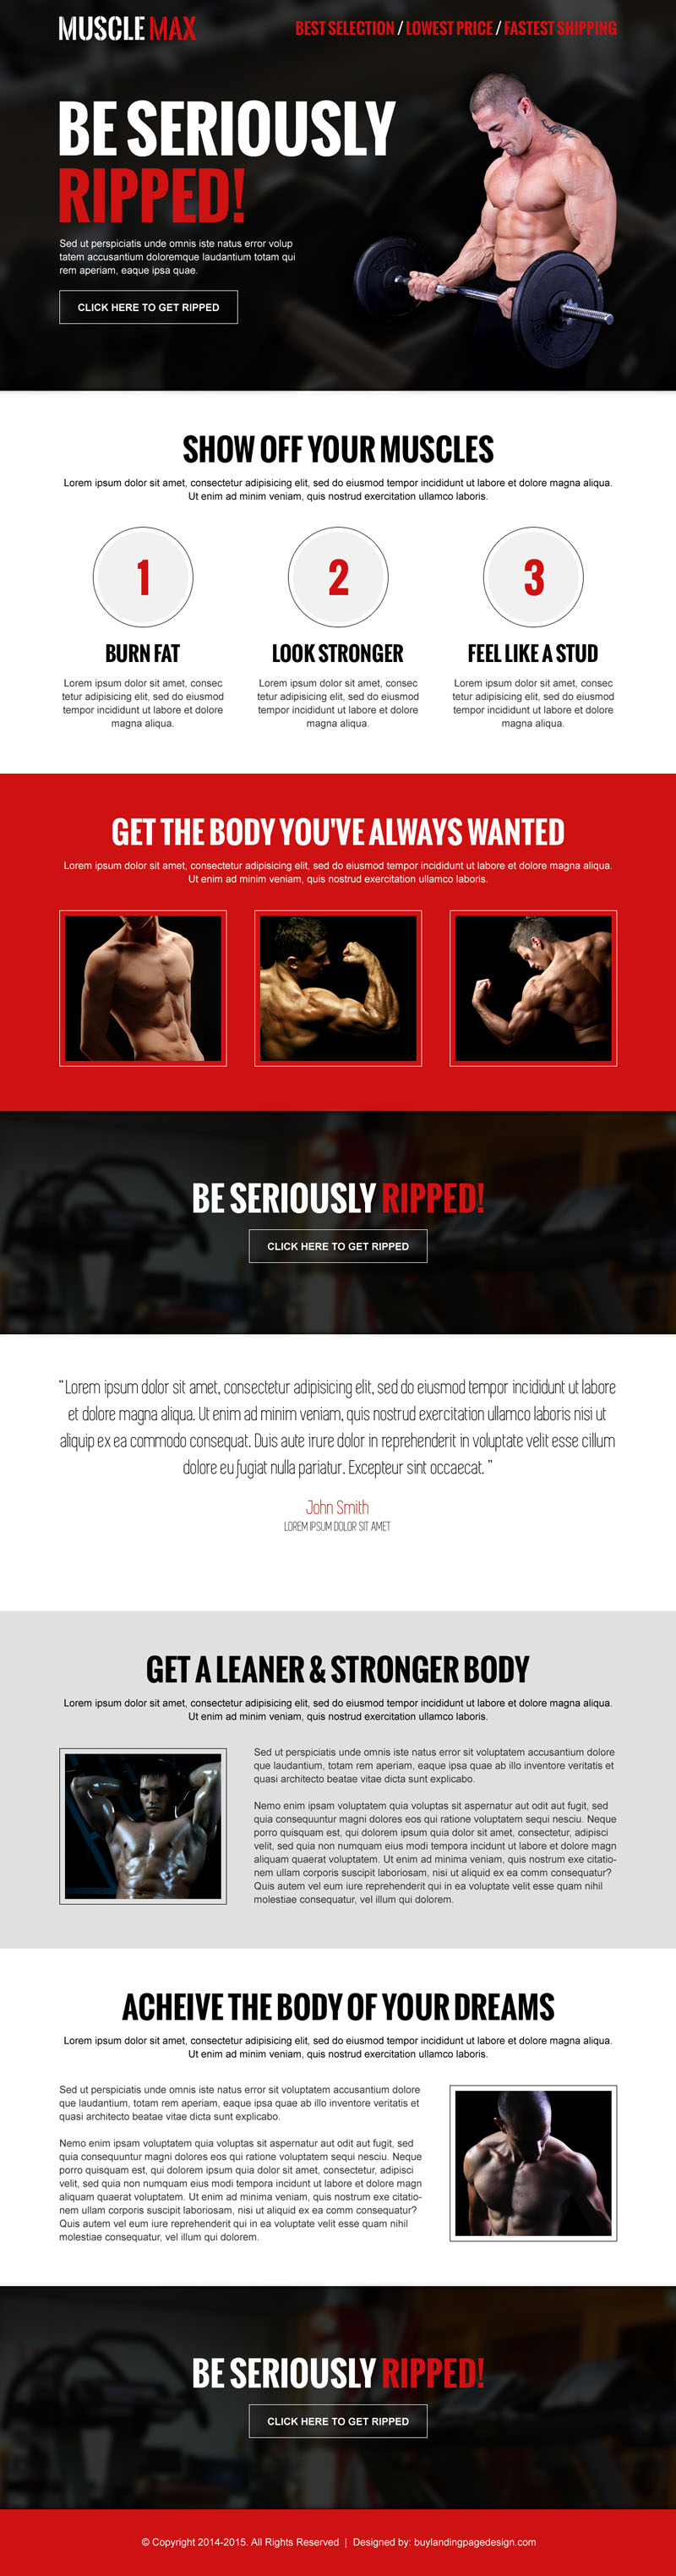 muscle-max-bodybuilding-call-to-action-responsive-landing-page-design-templates-003